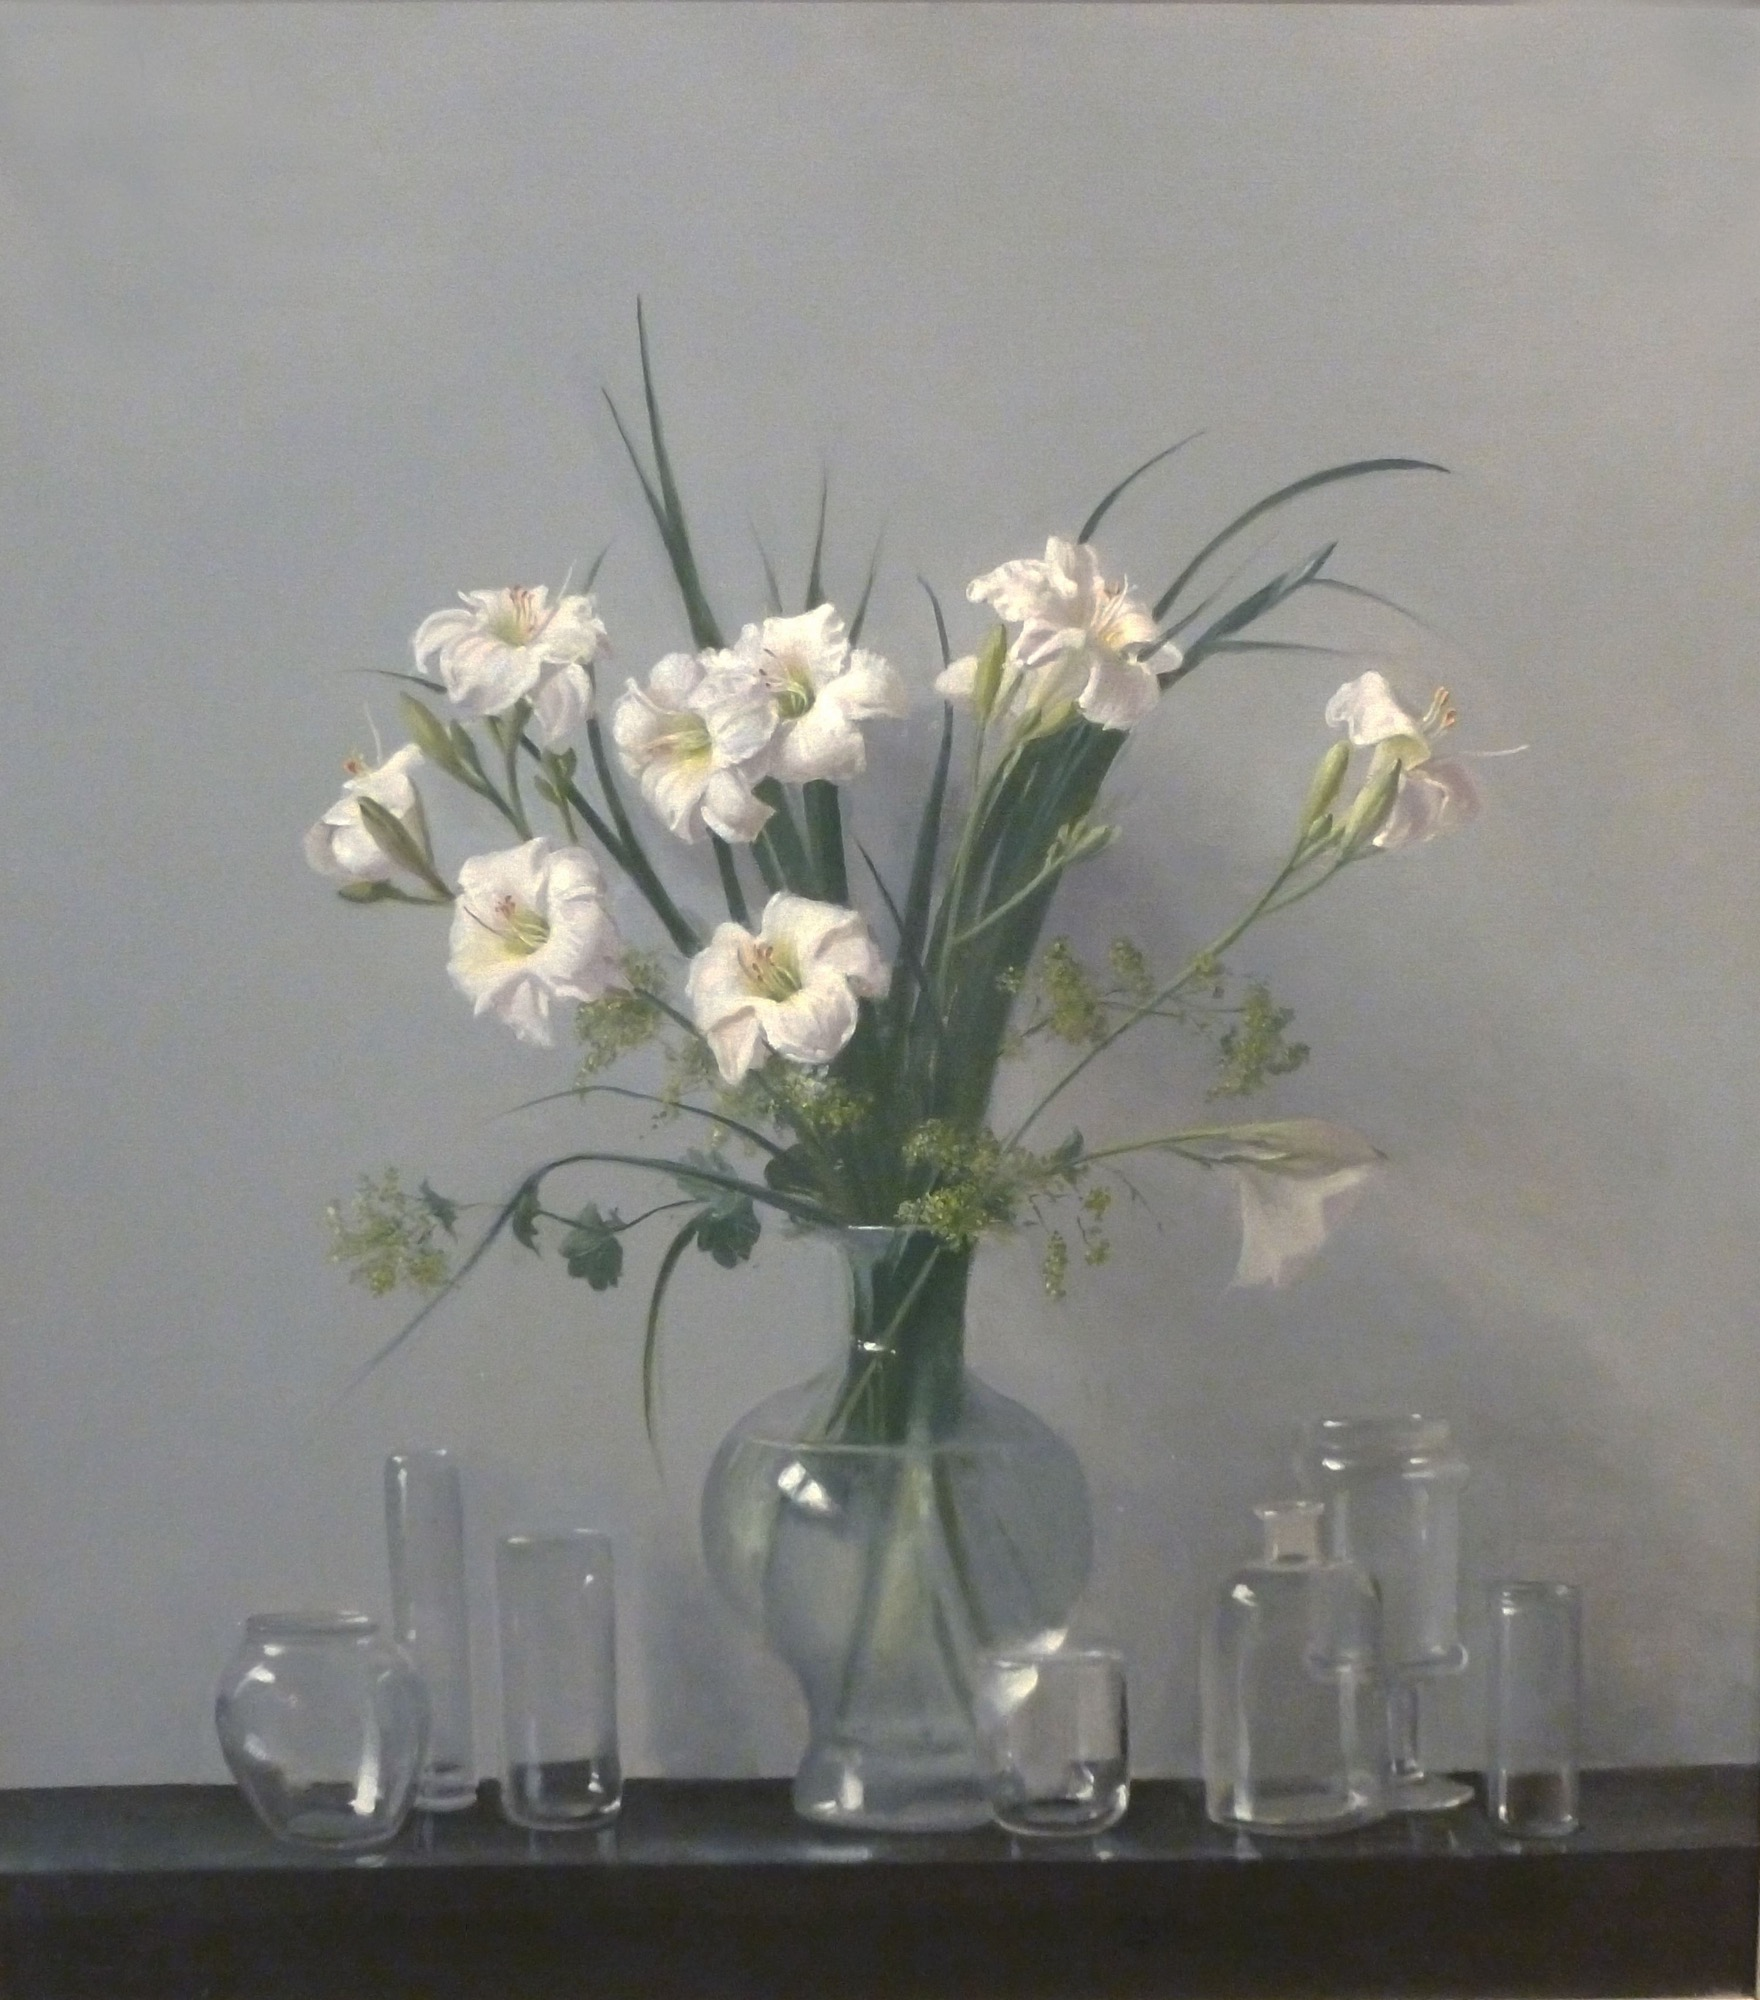 Raymond Han    Lilies with Reflective Glass Jars , 2009  Oil on canvas  44 x 40 inches  111.8 x 101.6 cm